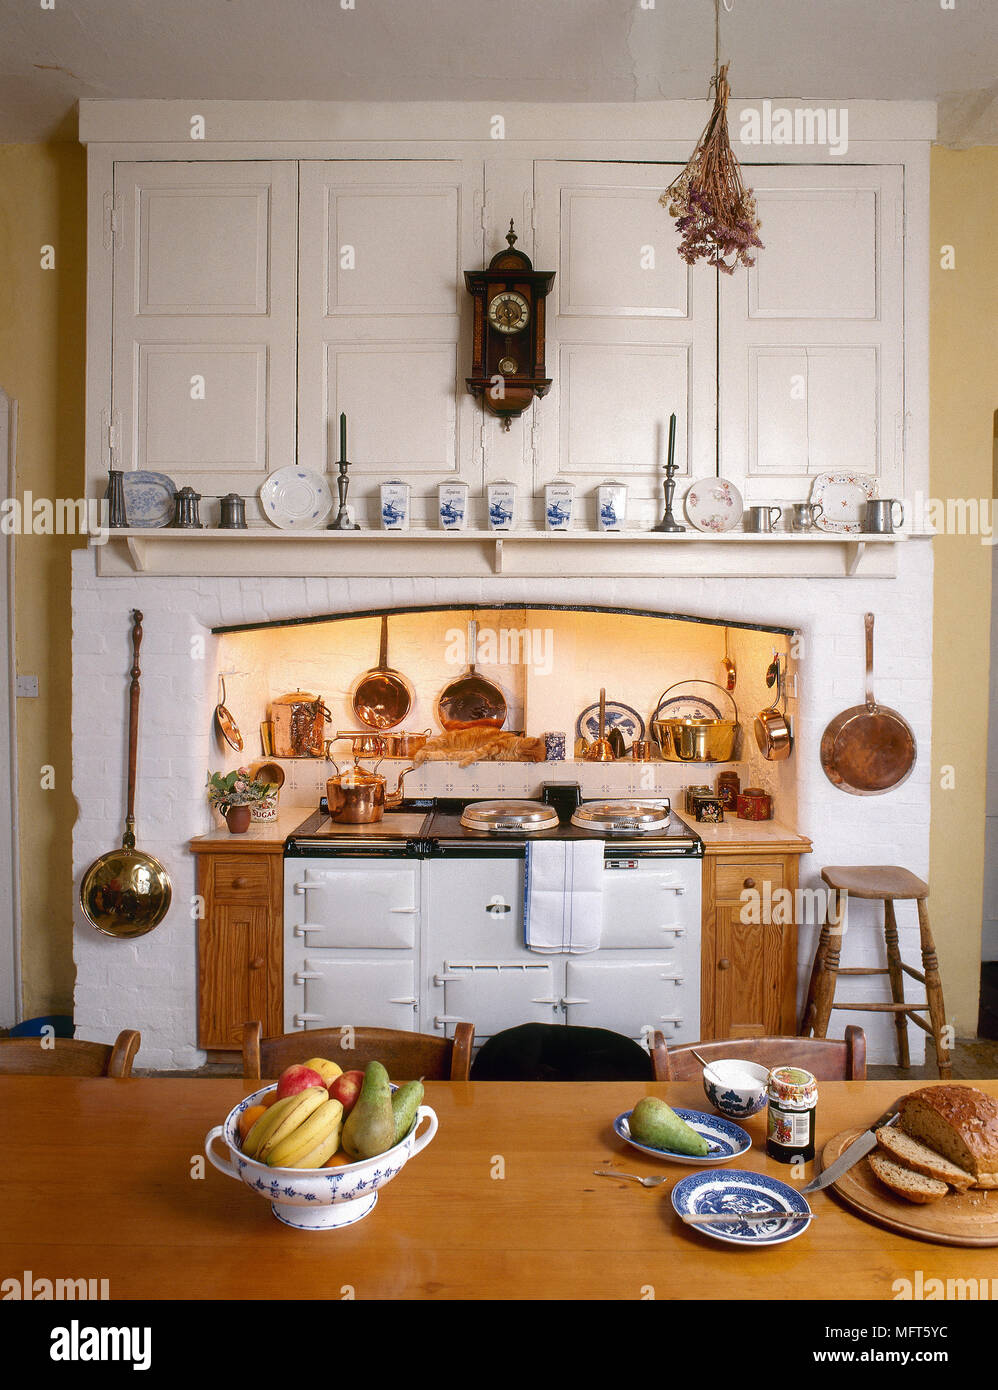 A Rustic, Country Kitchen With Farmhouse Table, White Aga In Recess, Copper  Pans,